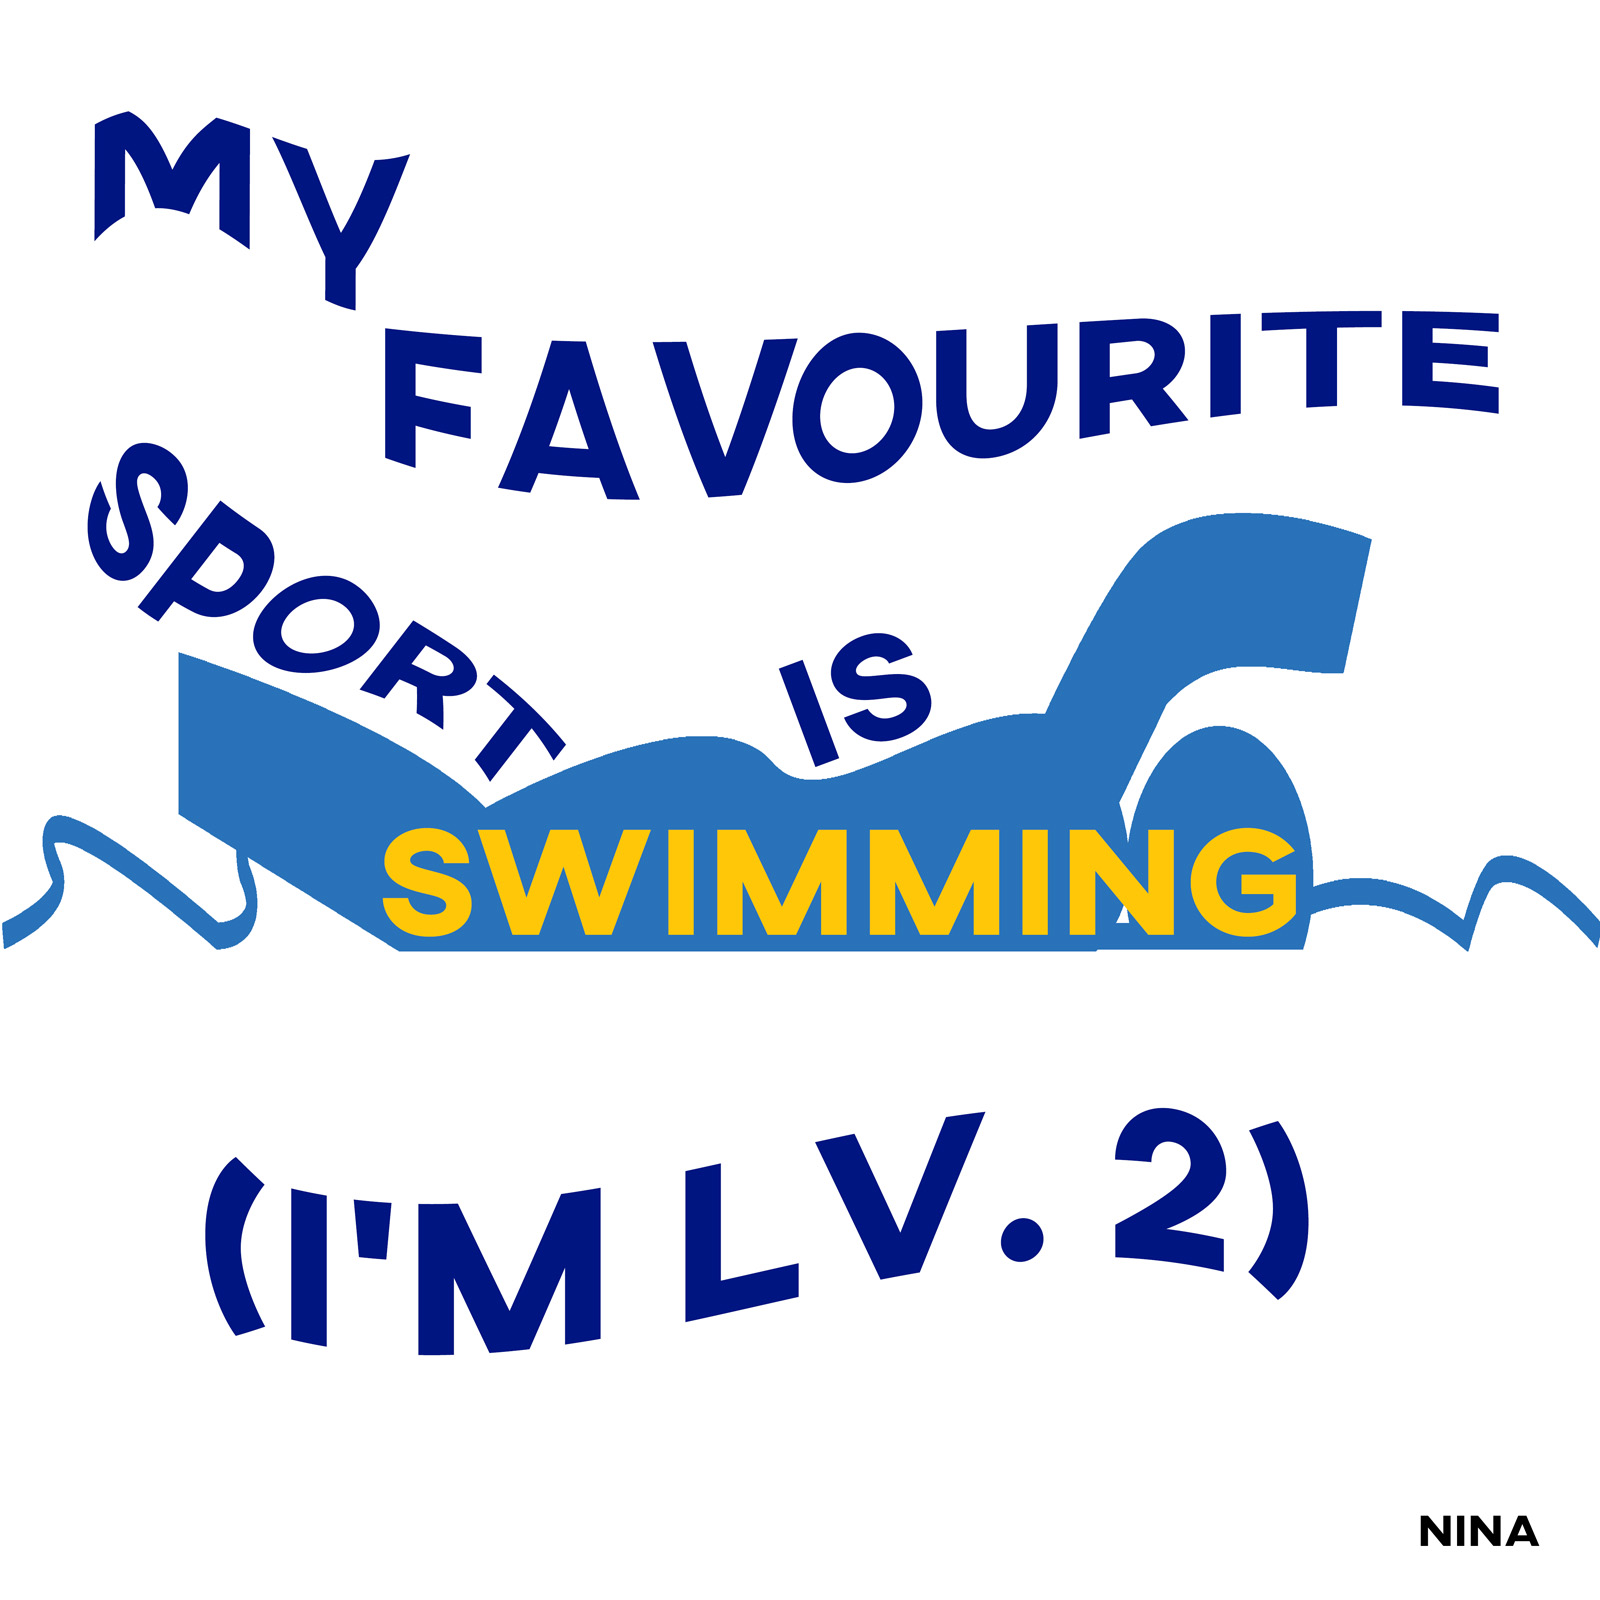 My favourite sport is swimming. I am level 2.